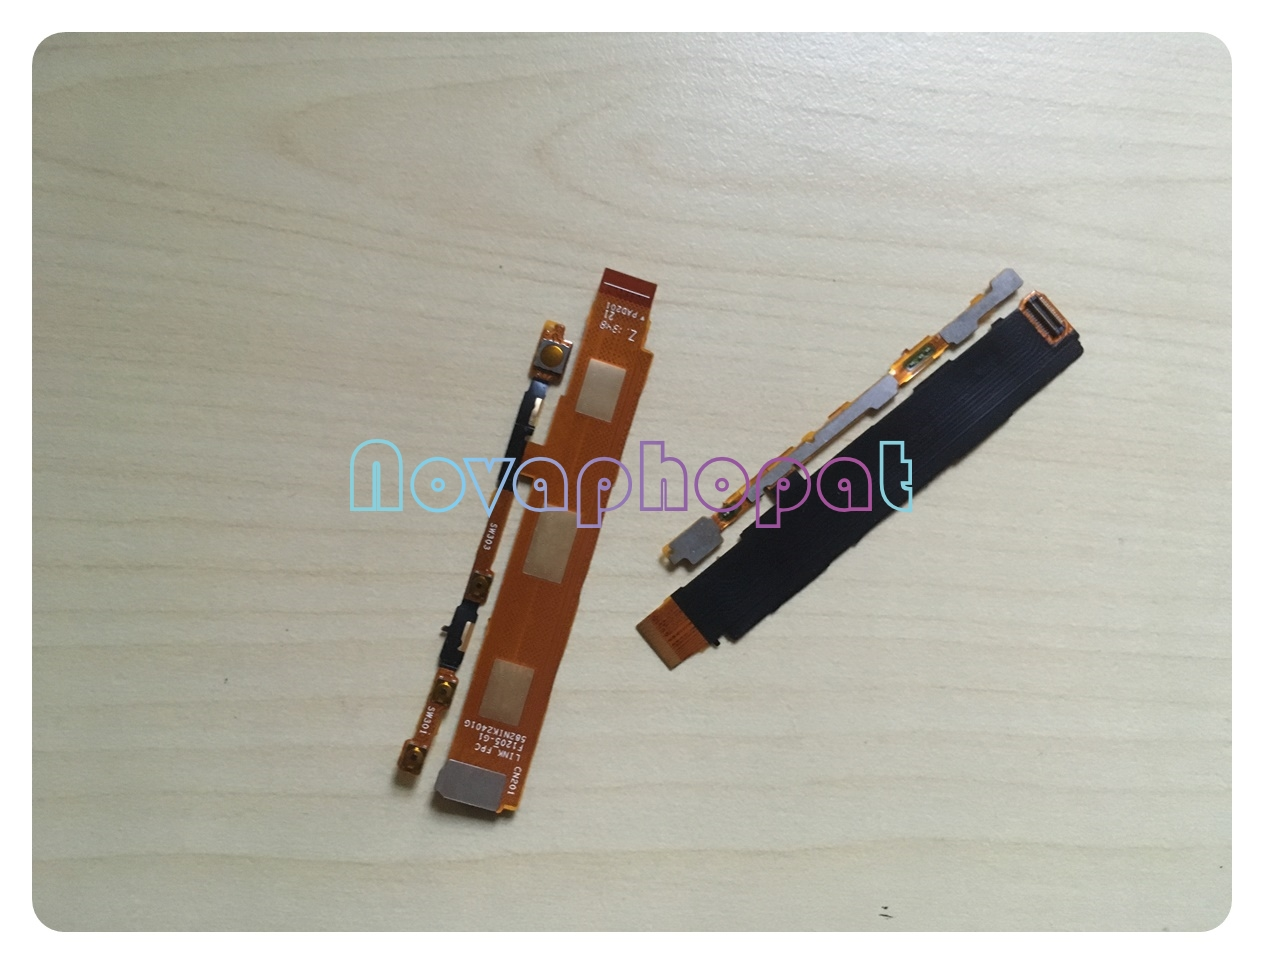 Novaphopat For Sony Xperia M C1904 C1905 Power On Off C2005 C2004 Volume Up Down Switch Button Flex Cable Replacement +tracking